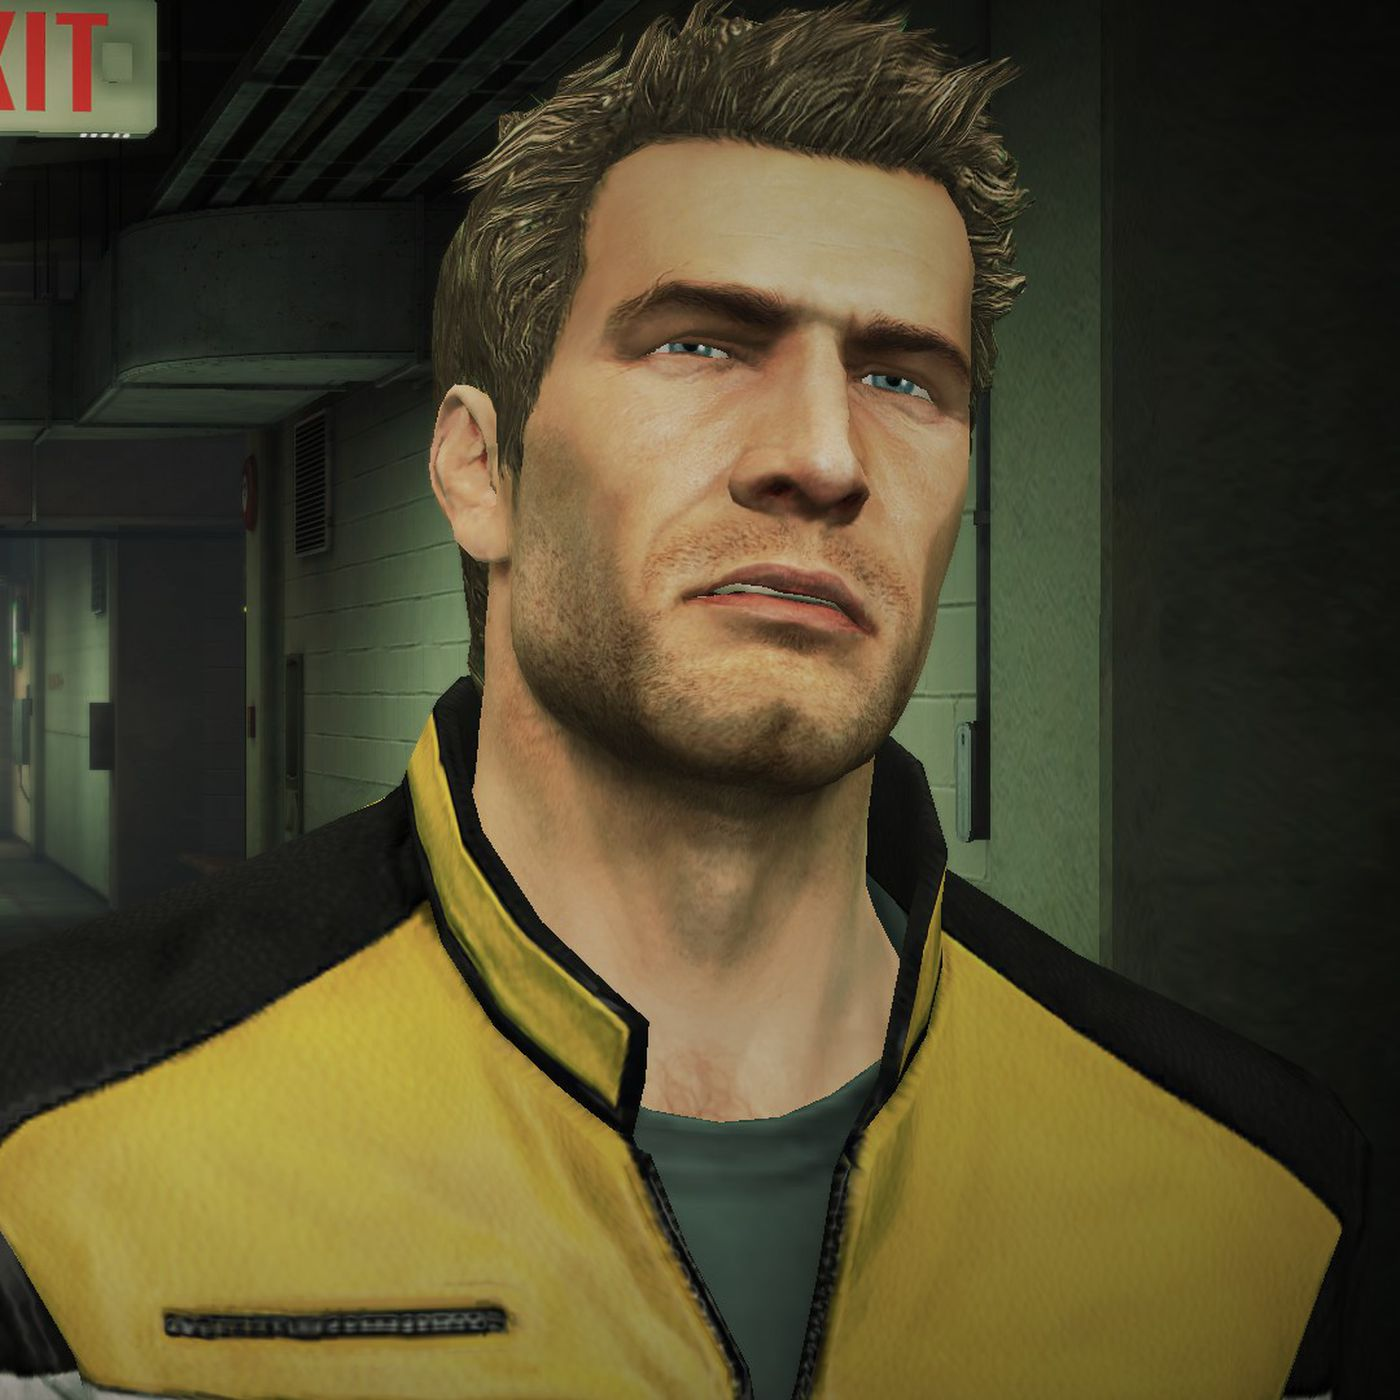 Last Gen Dead Rising Games Coming To Ps4 And Xbox One Next Month